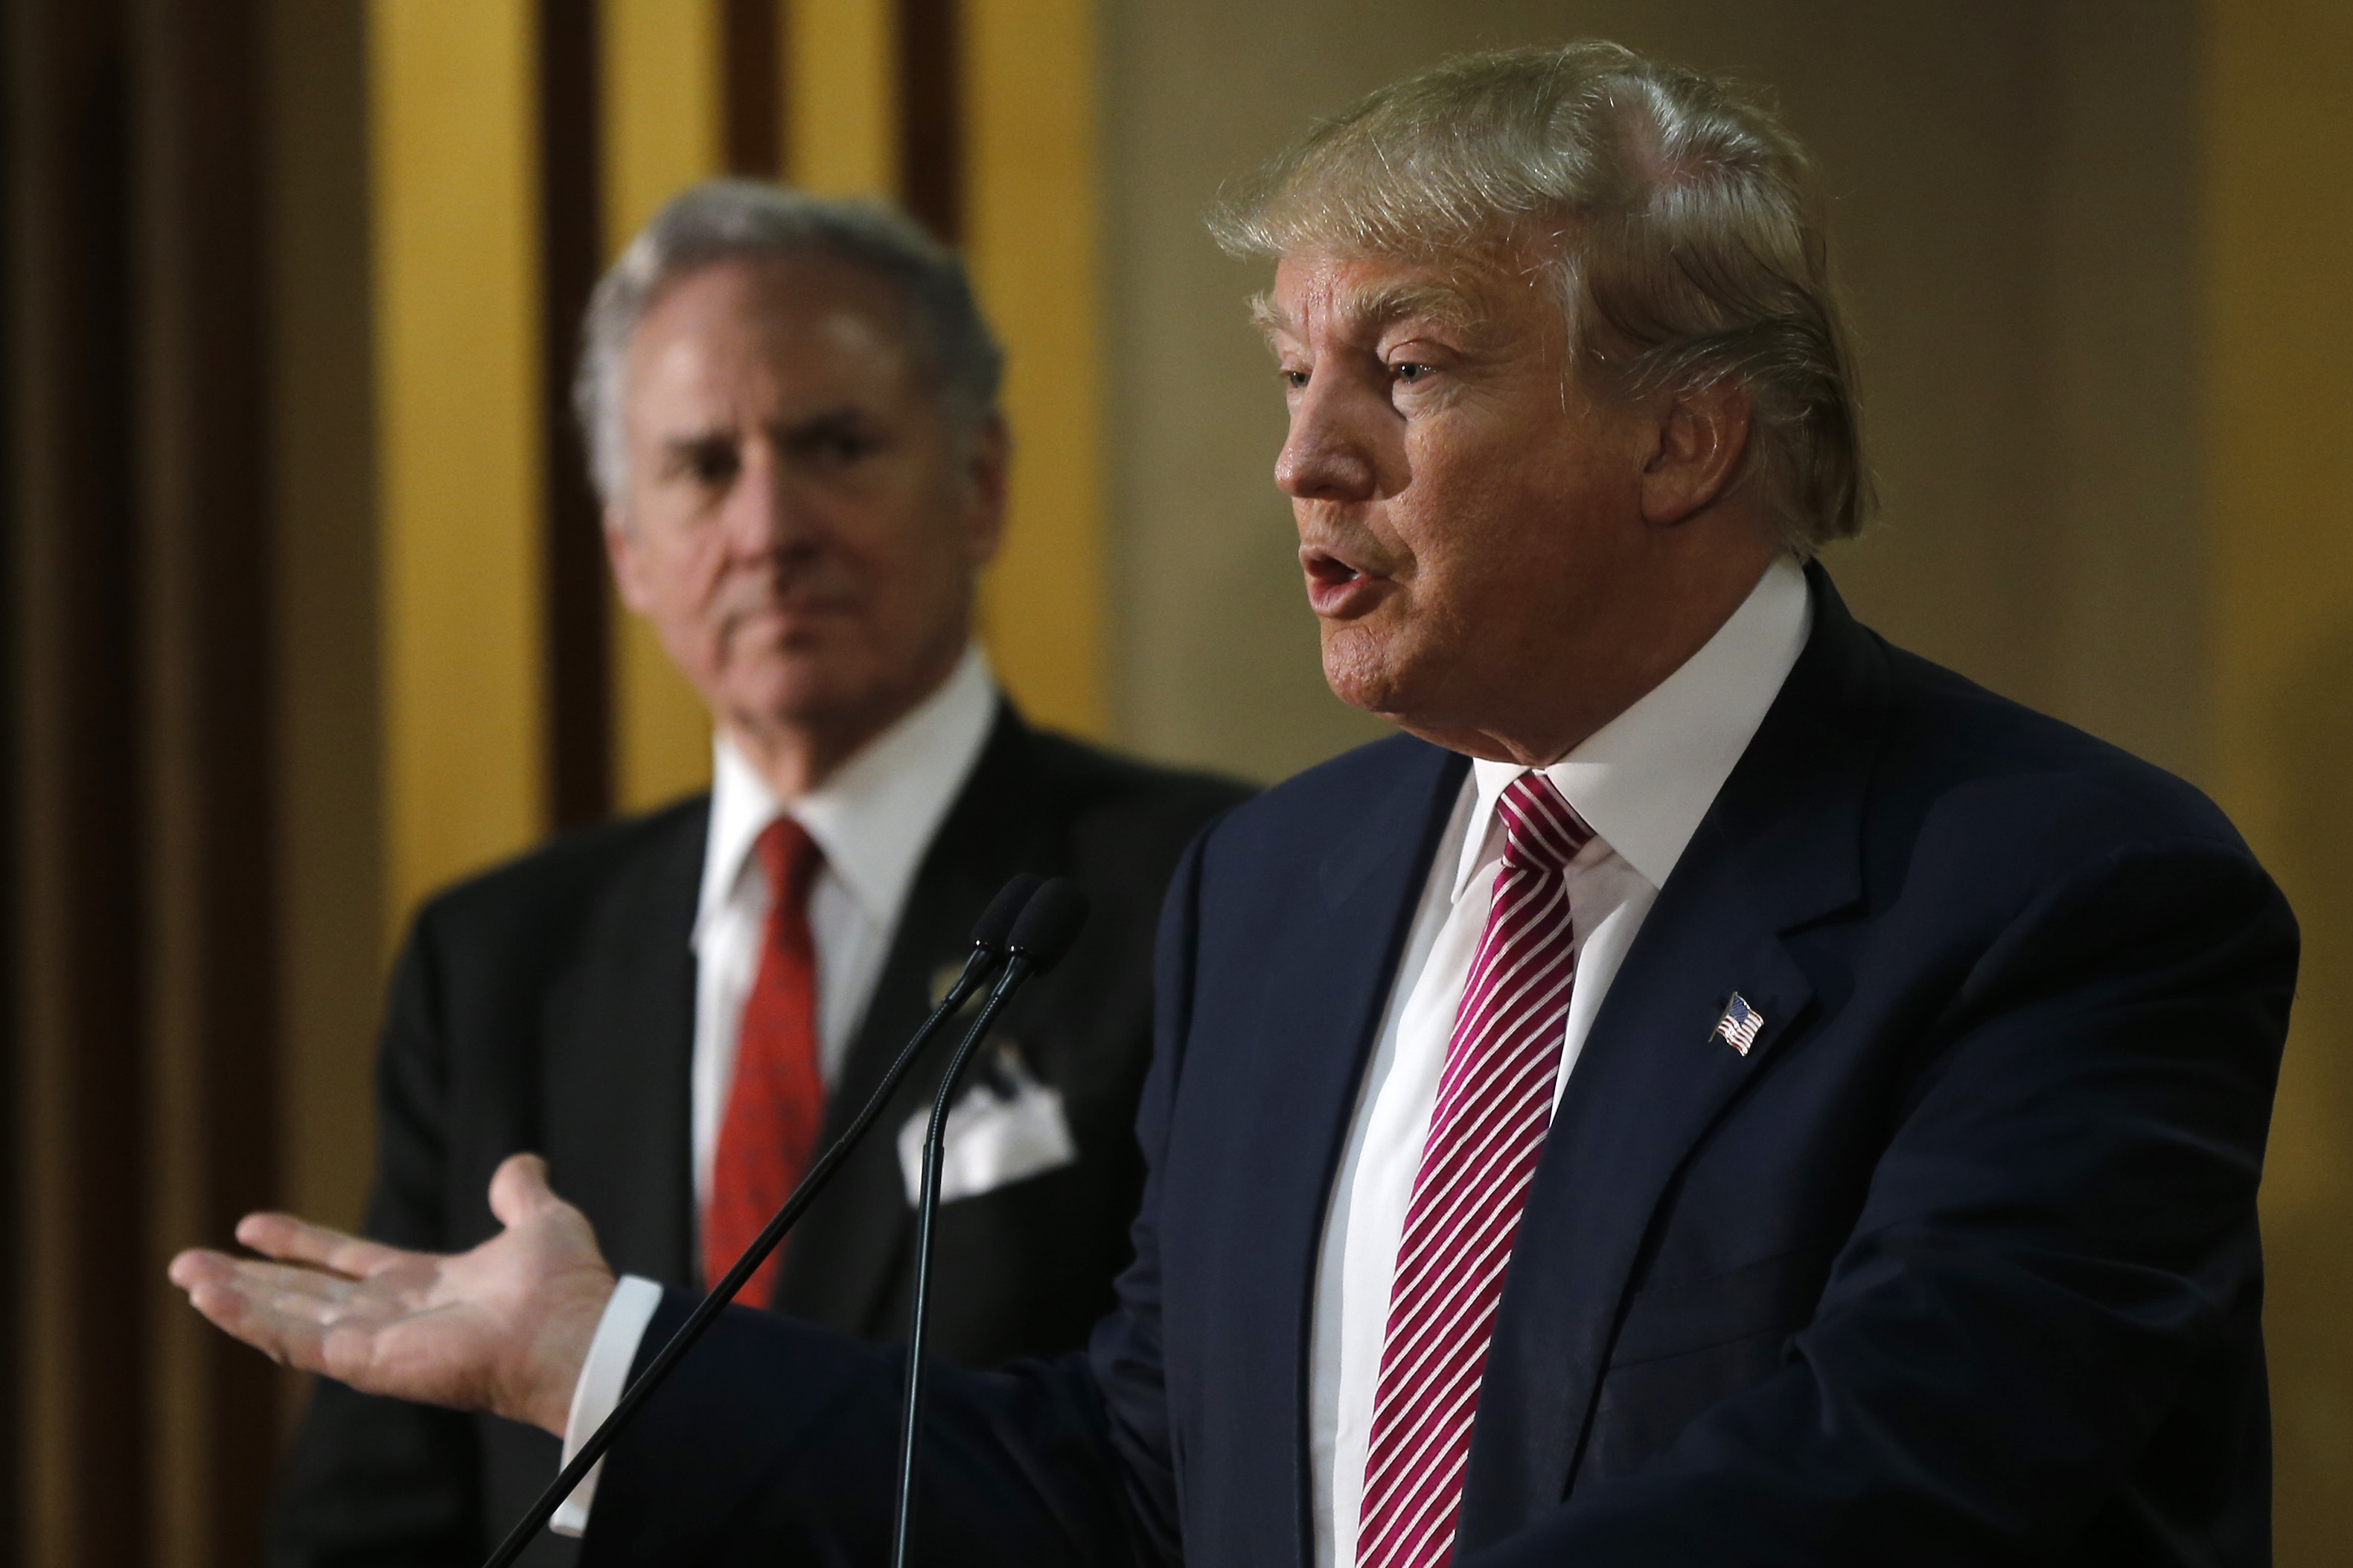 Republican presidential candidate Donald Trump, right, accompanied by South Carolina Lt. Gov. Henry McMaster, speaks with members of the media during a news conference Monday, Feb. 15, 2016, in Hanahan, S.C. (AP Photo/Matt Rourke)